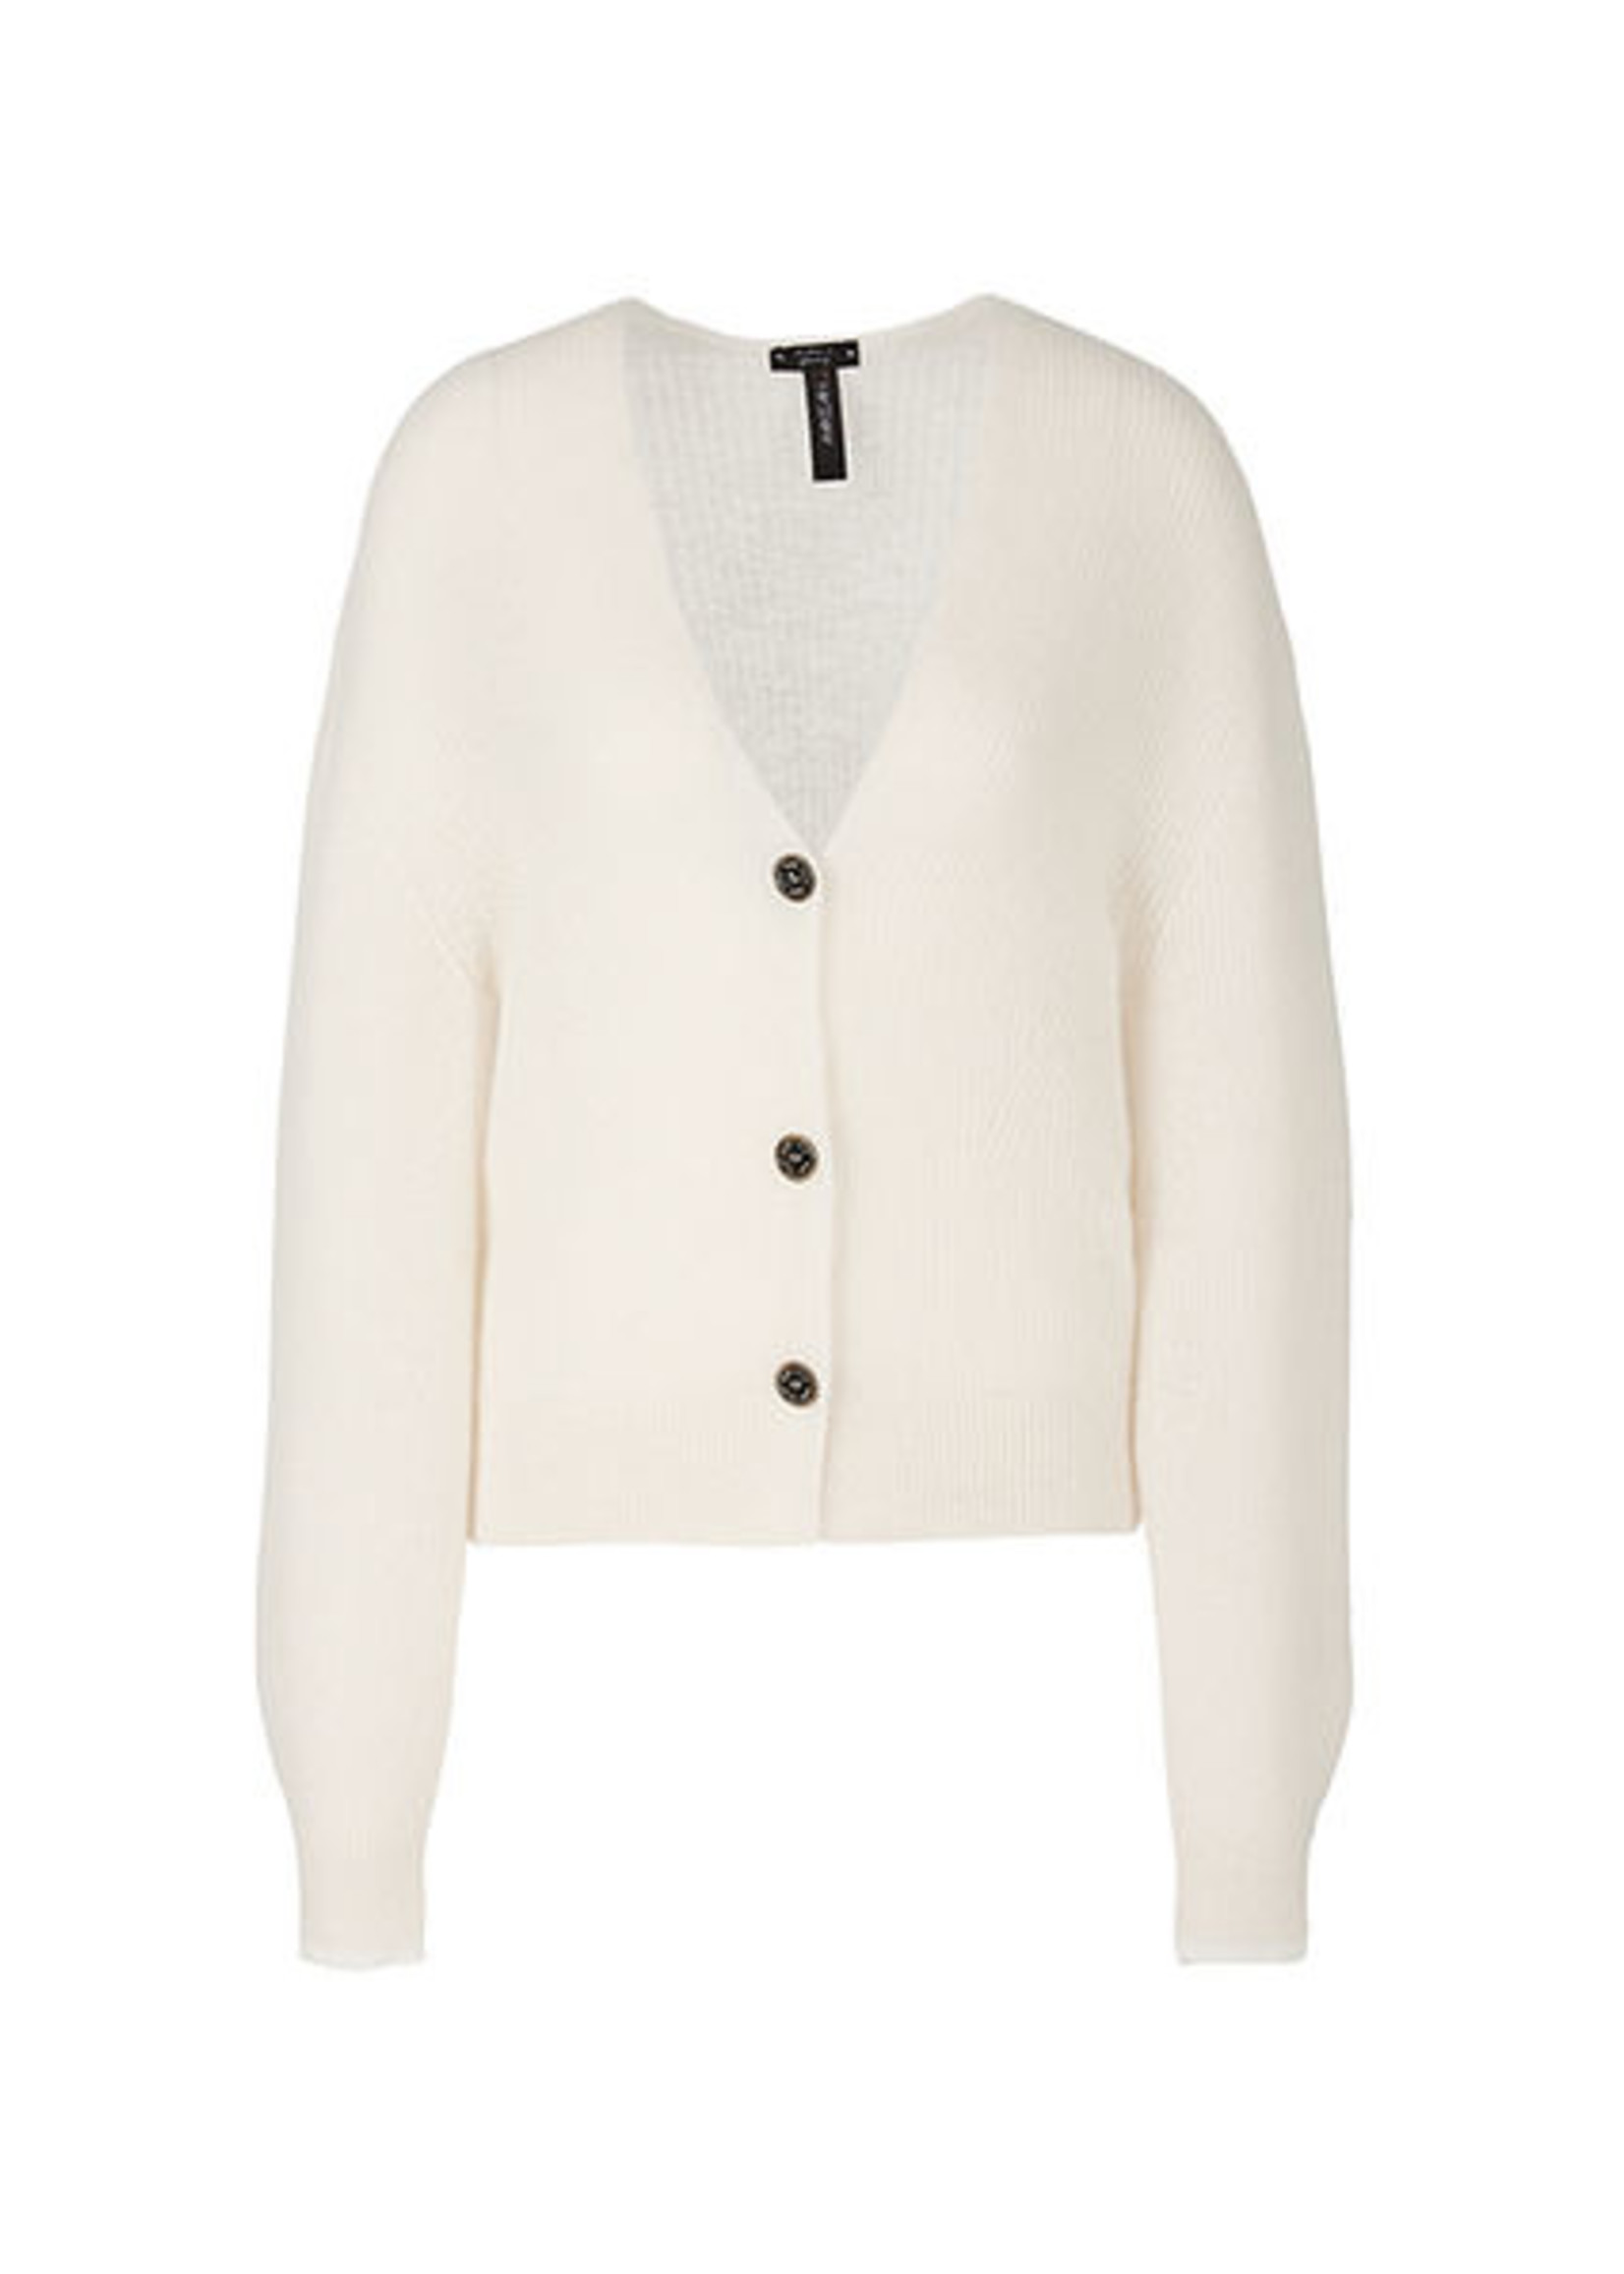 Marccain Sports Jack RS 31.08 M04 off-white